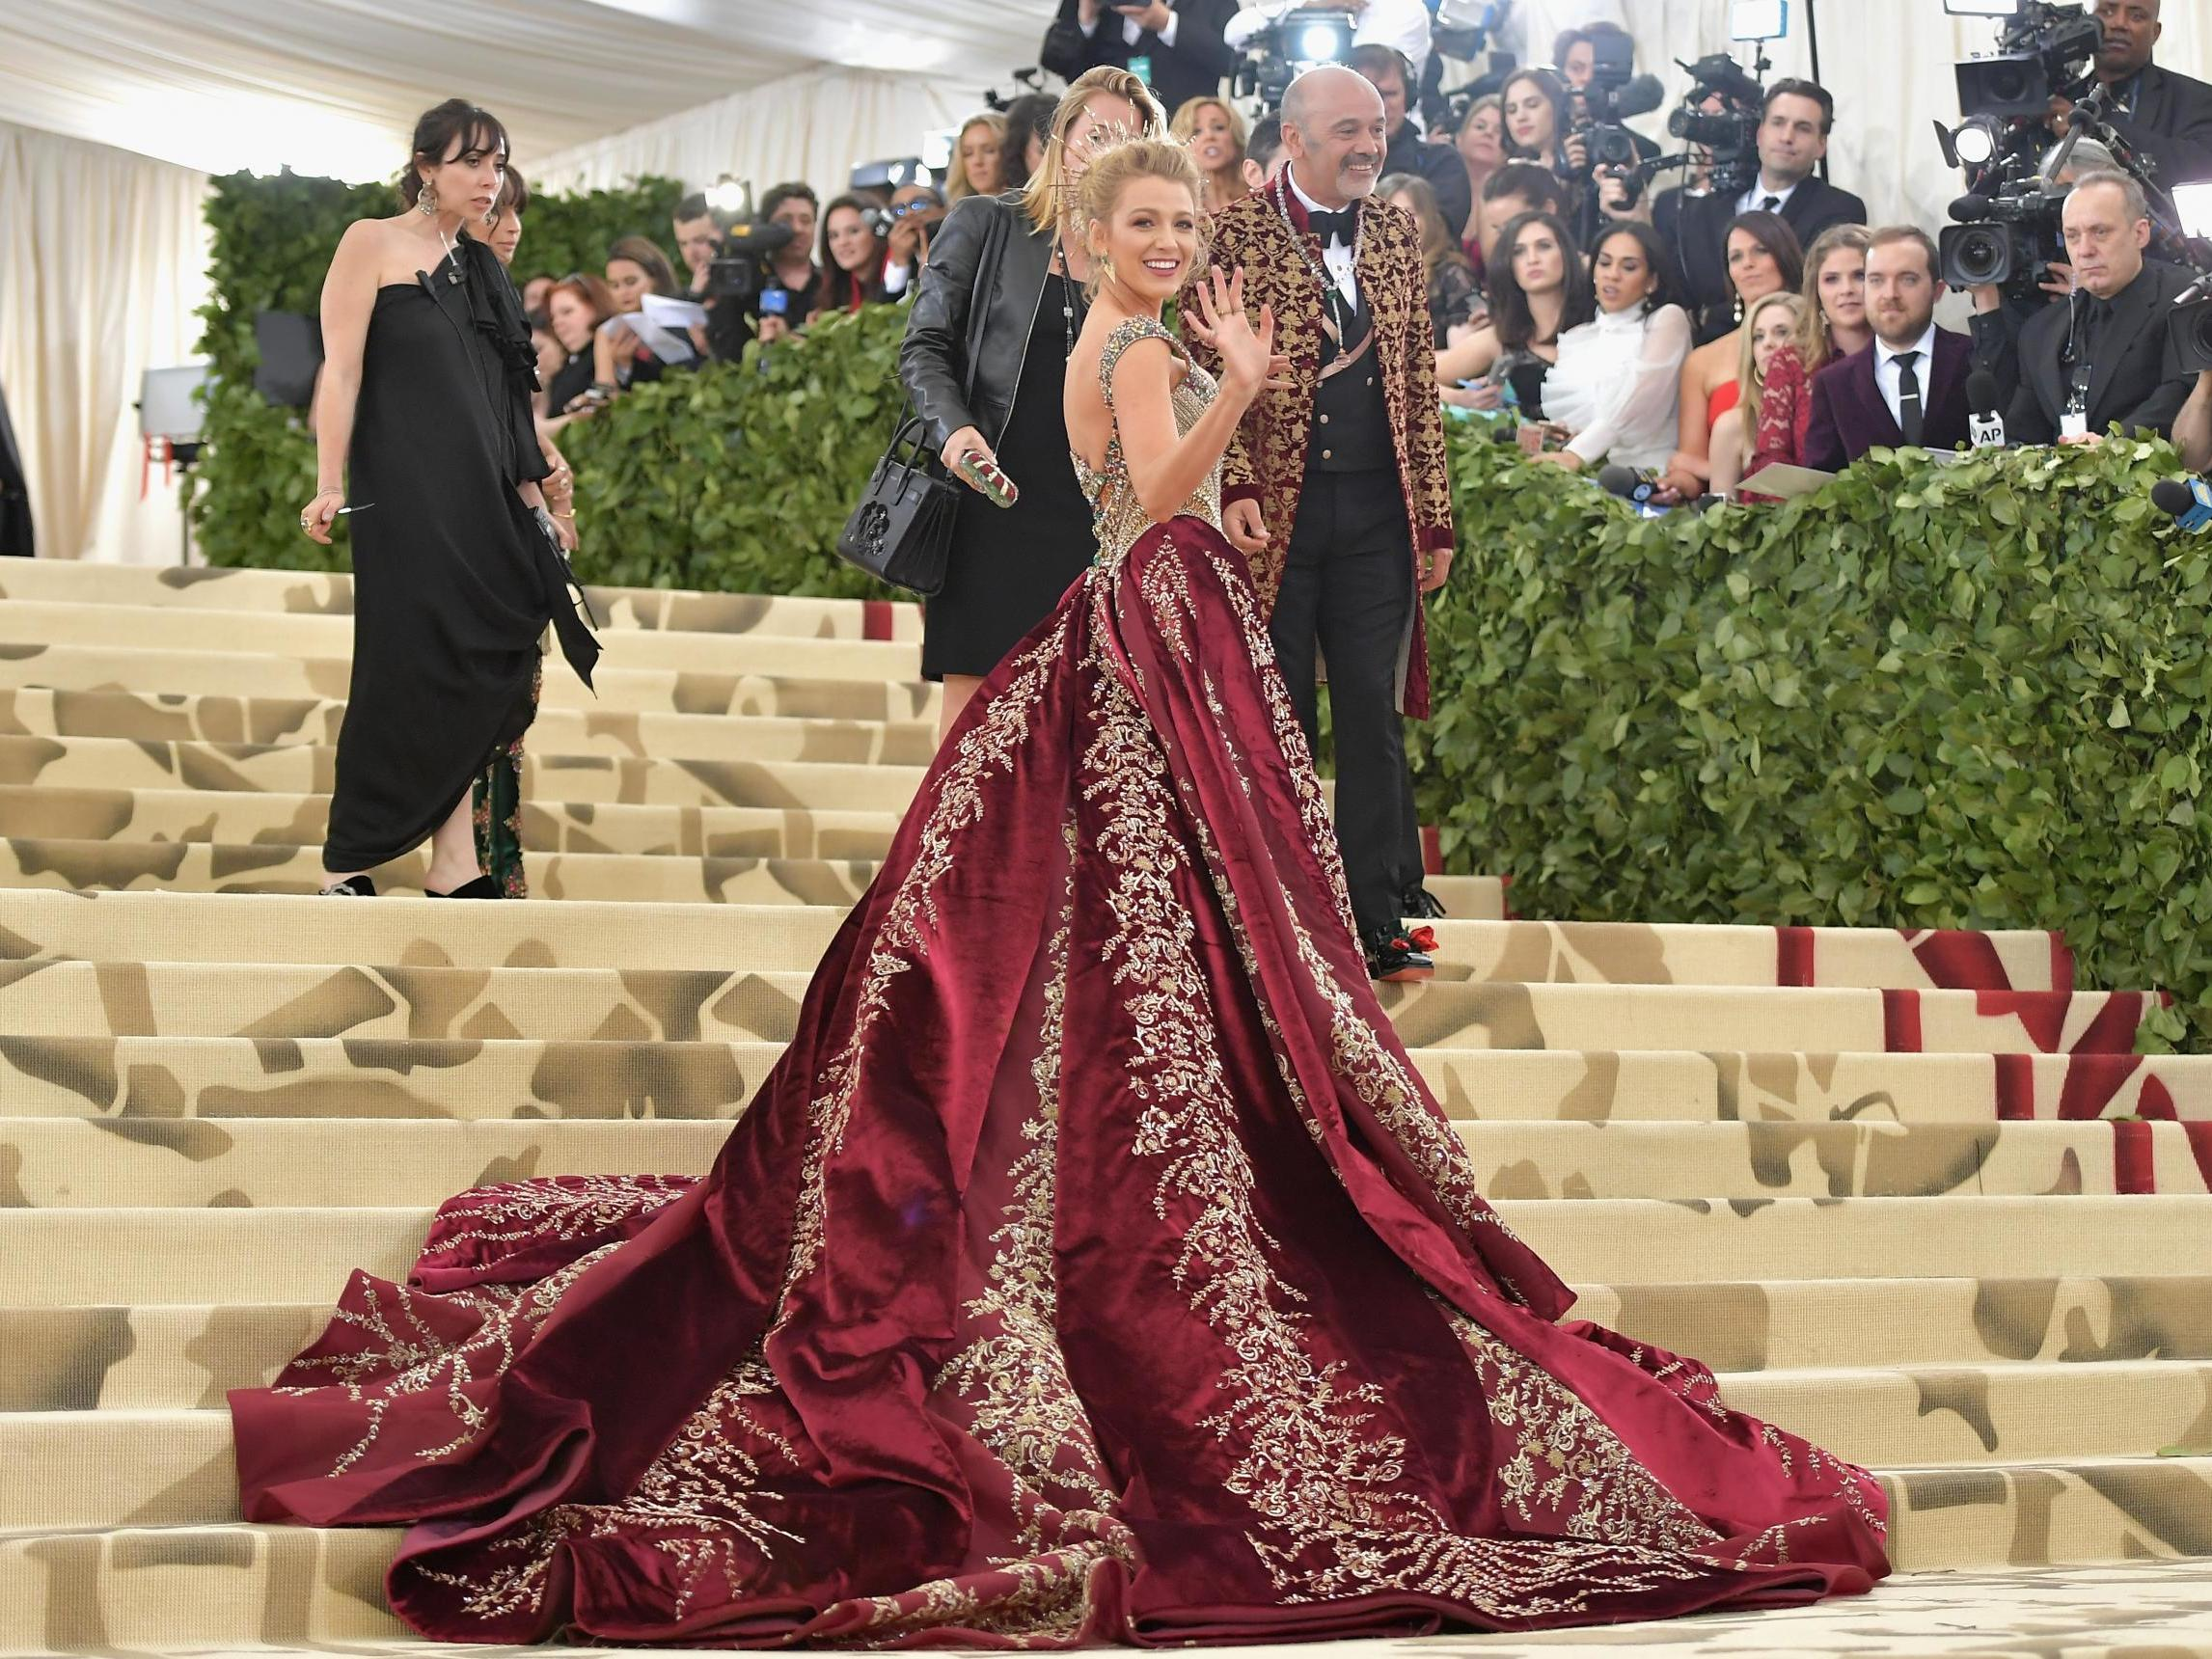 Met Gala: Why is annual fashion event held on first Monday in May?